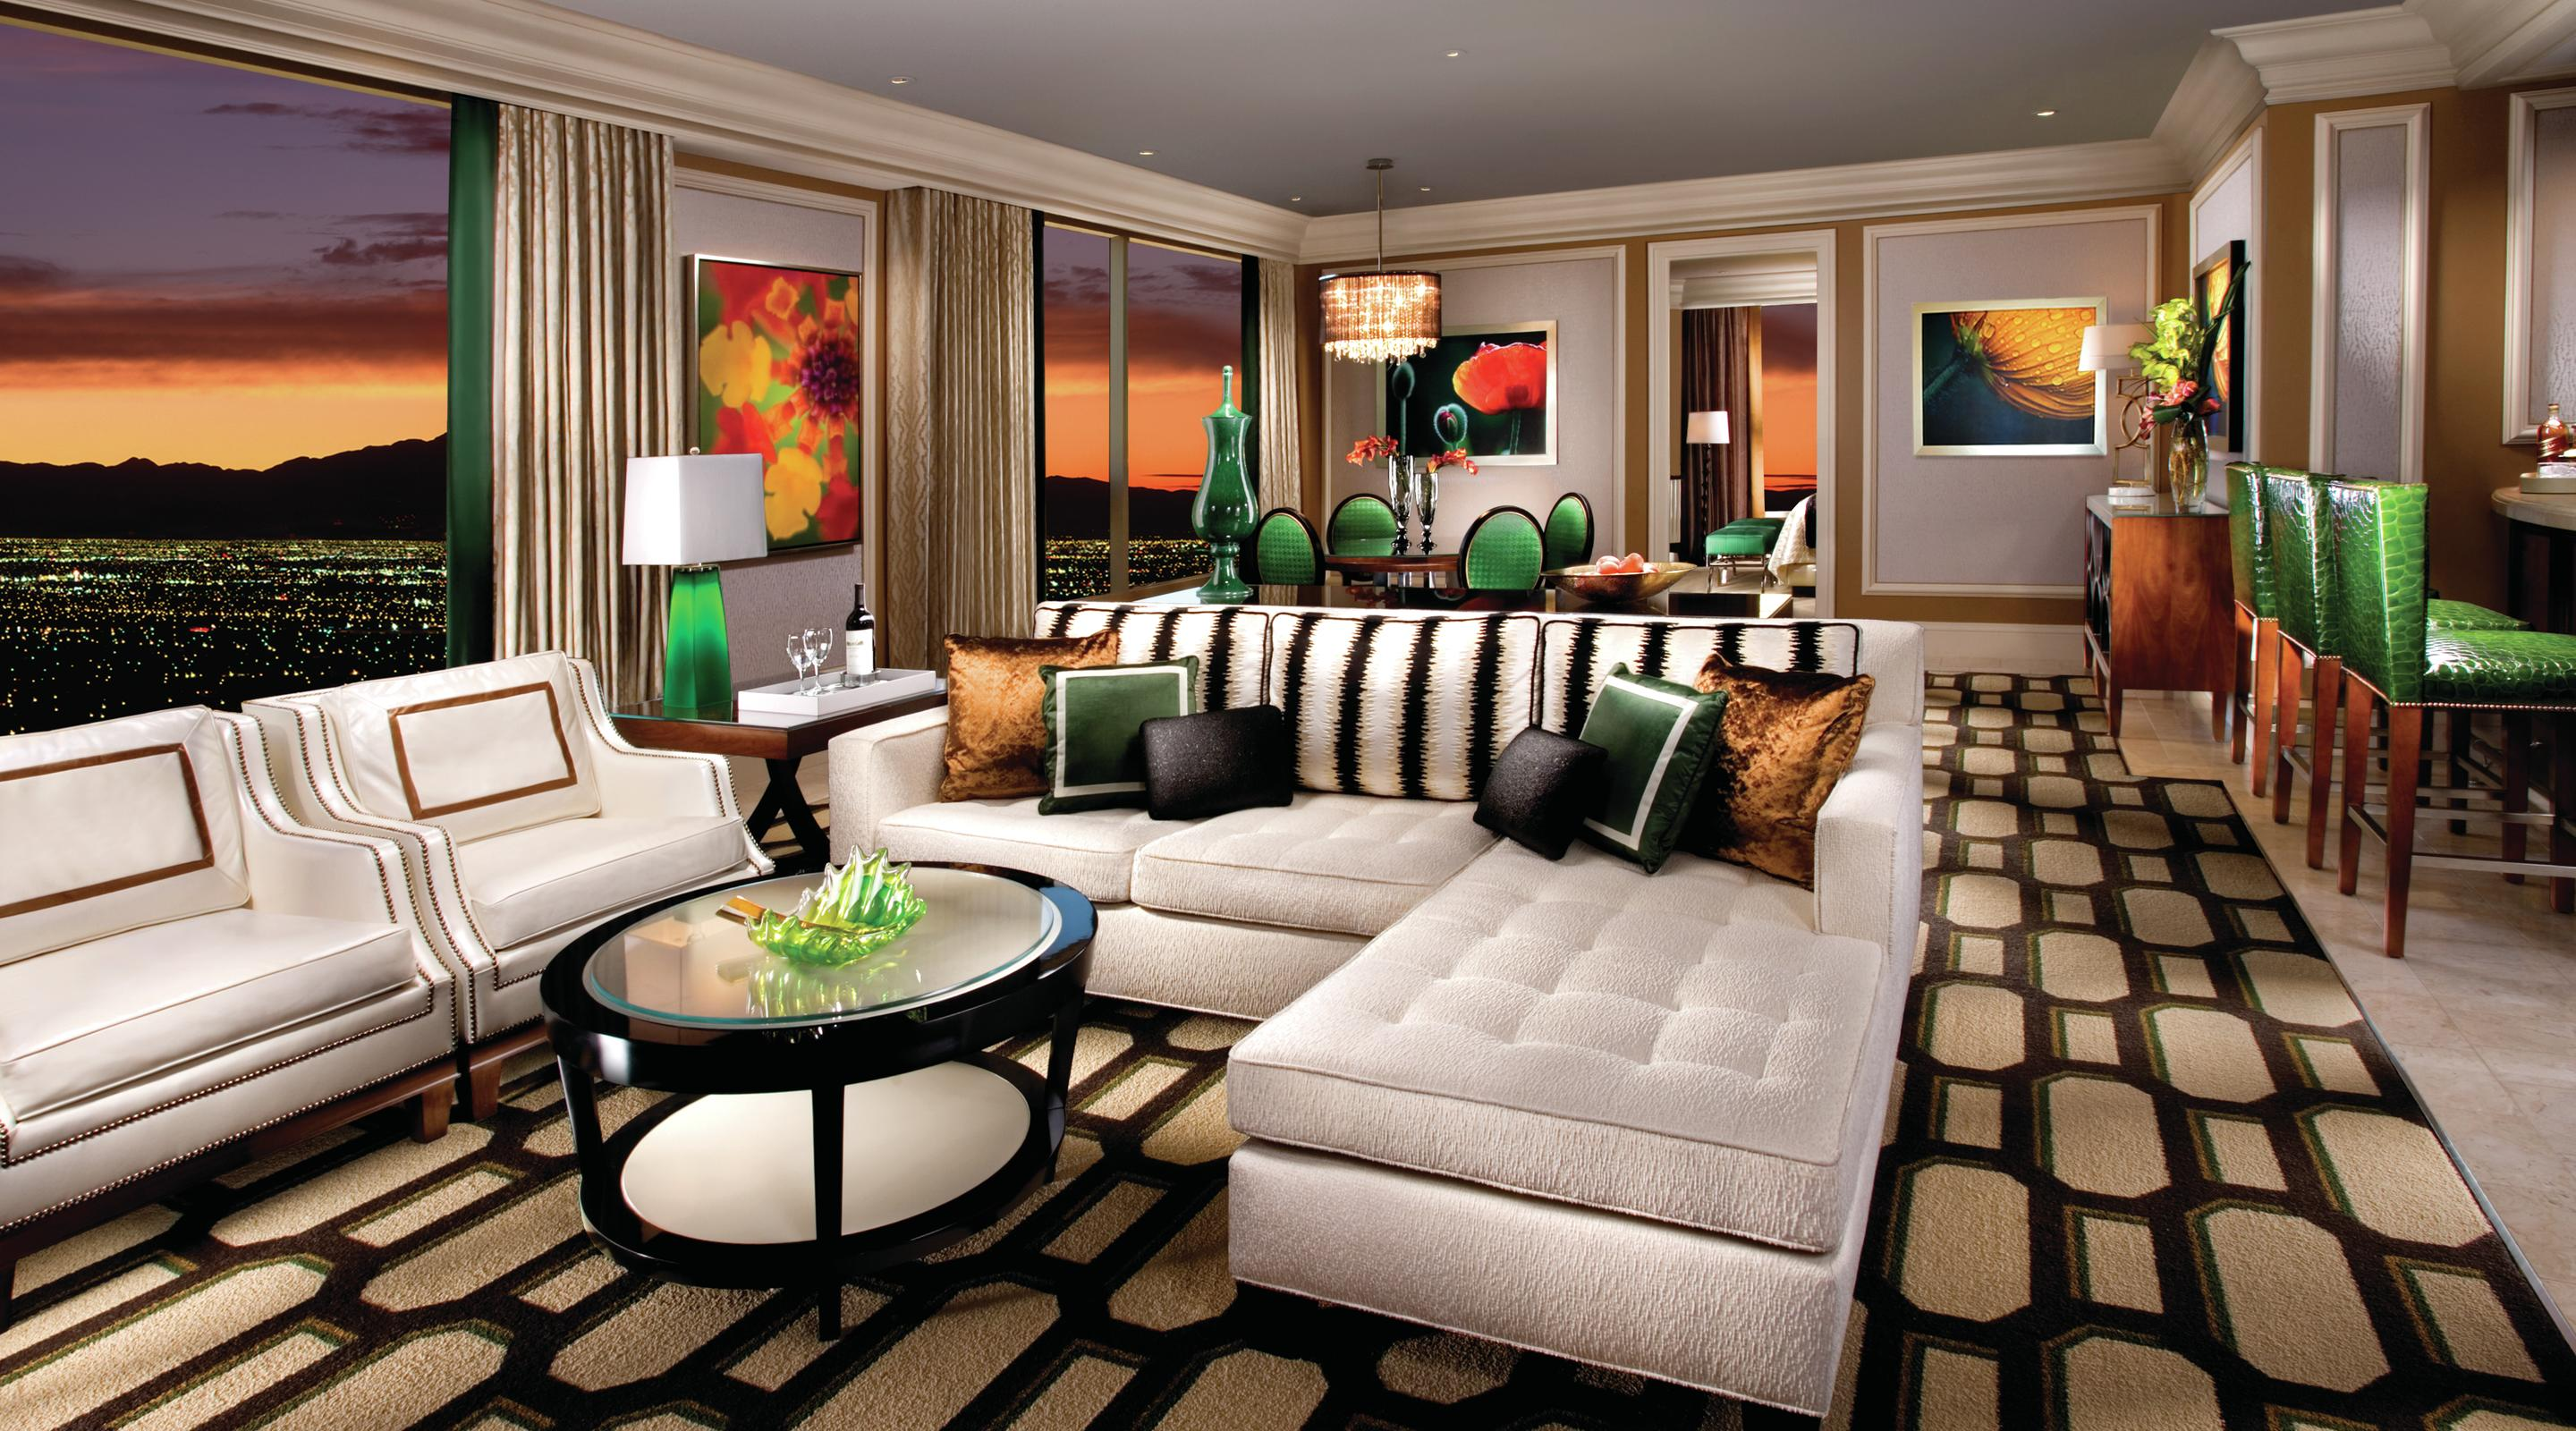 http://lasvegassuites.com/wp-content/uploads/2016/03/bellagio-hotel-penthouse-suite-living-room.jpg